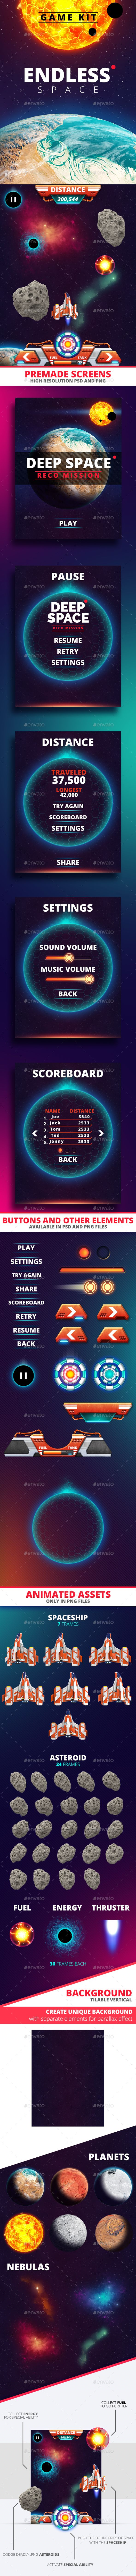 Endless Space Game Kit - Game #Kits #Game #Assets | Download http://graphicriver.net/item/endless-space-game-kit/14390235?ref=sinzo